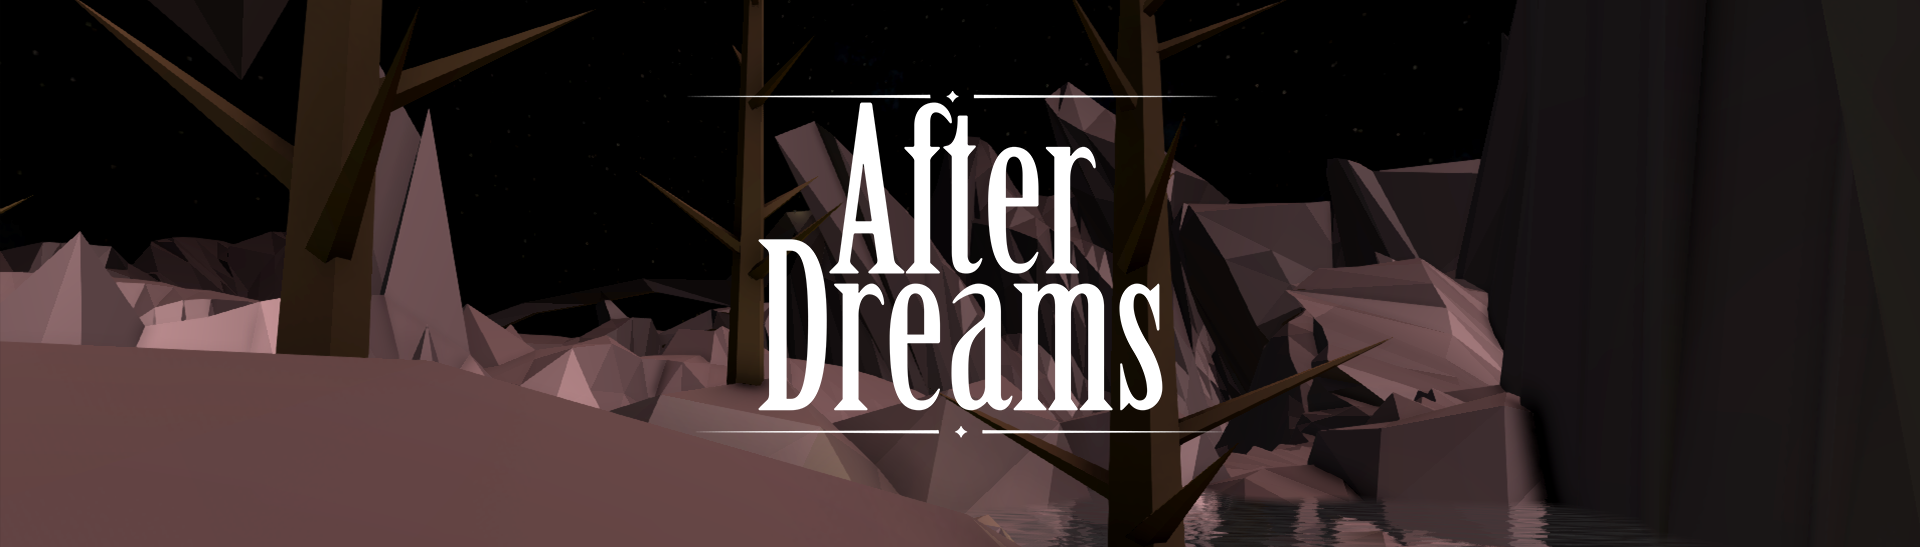 After Dreams